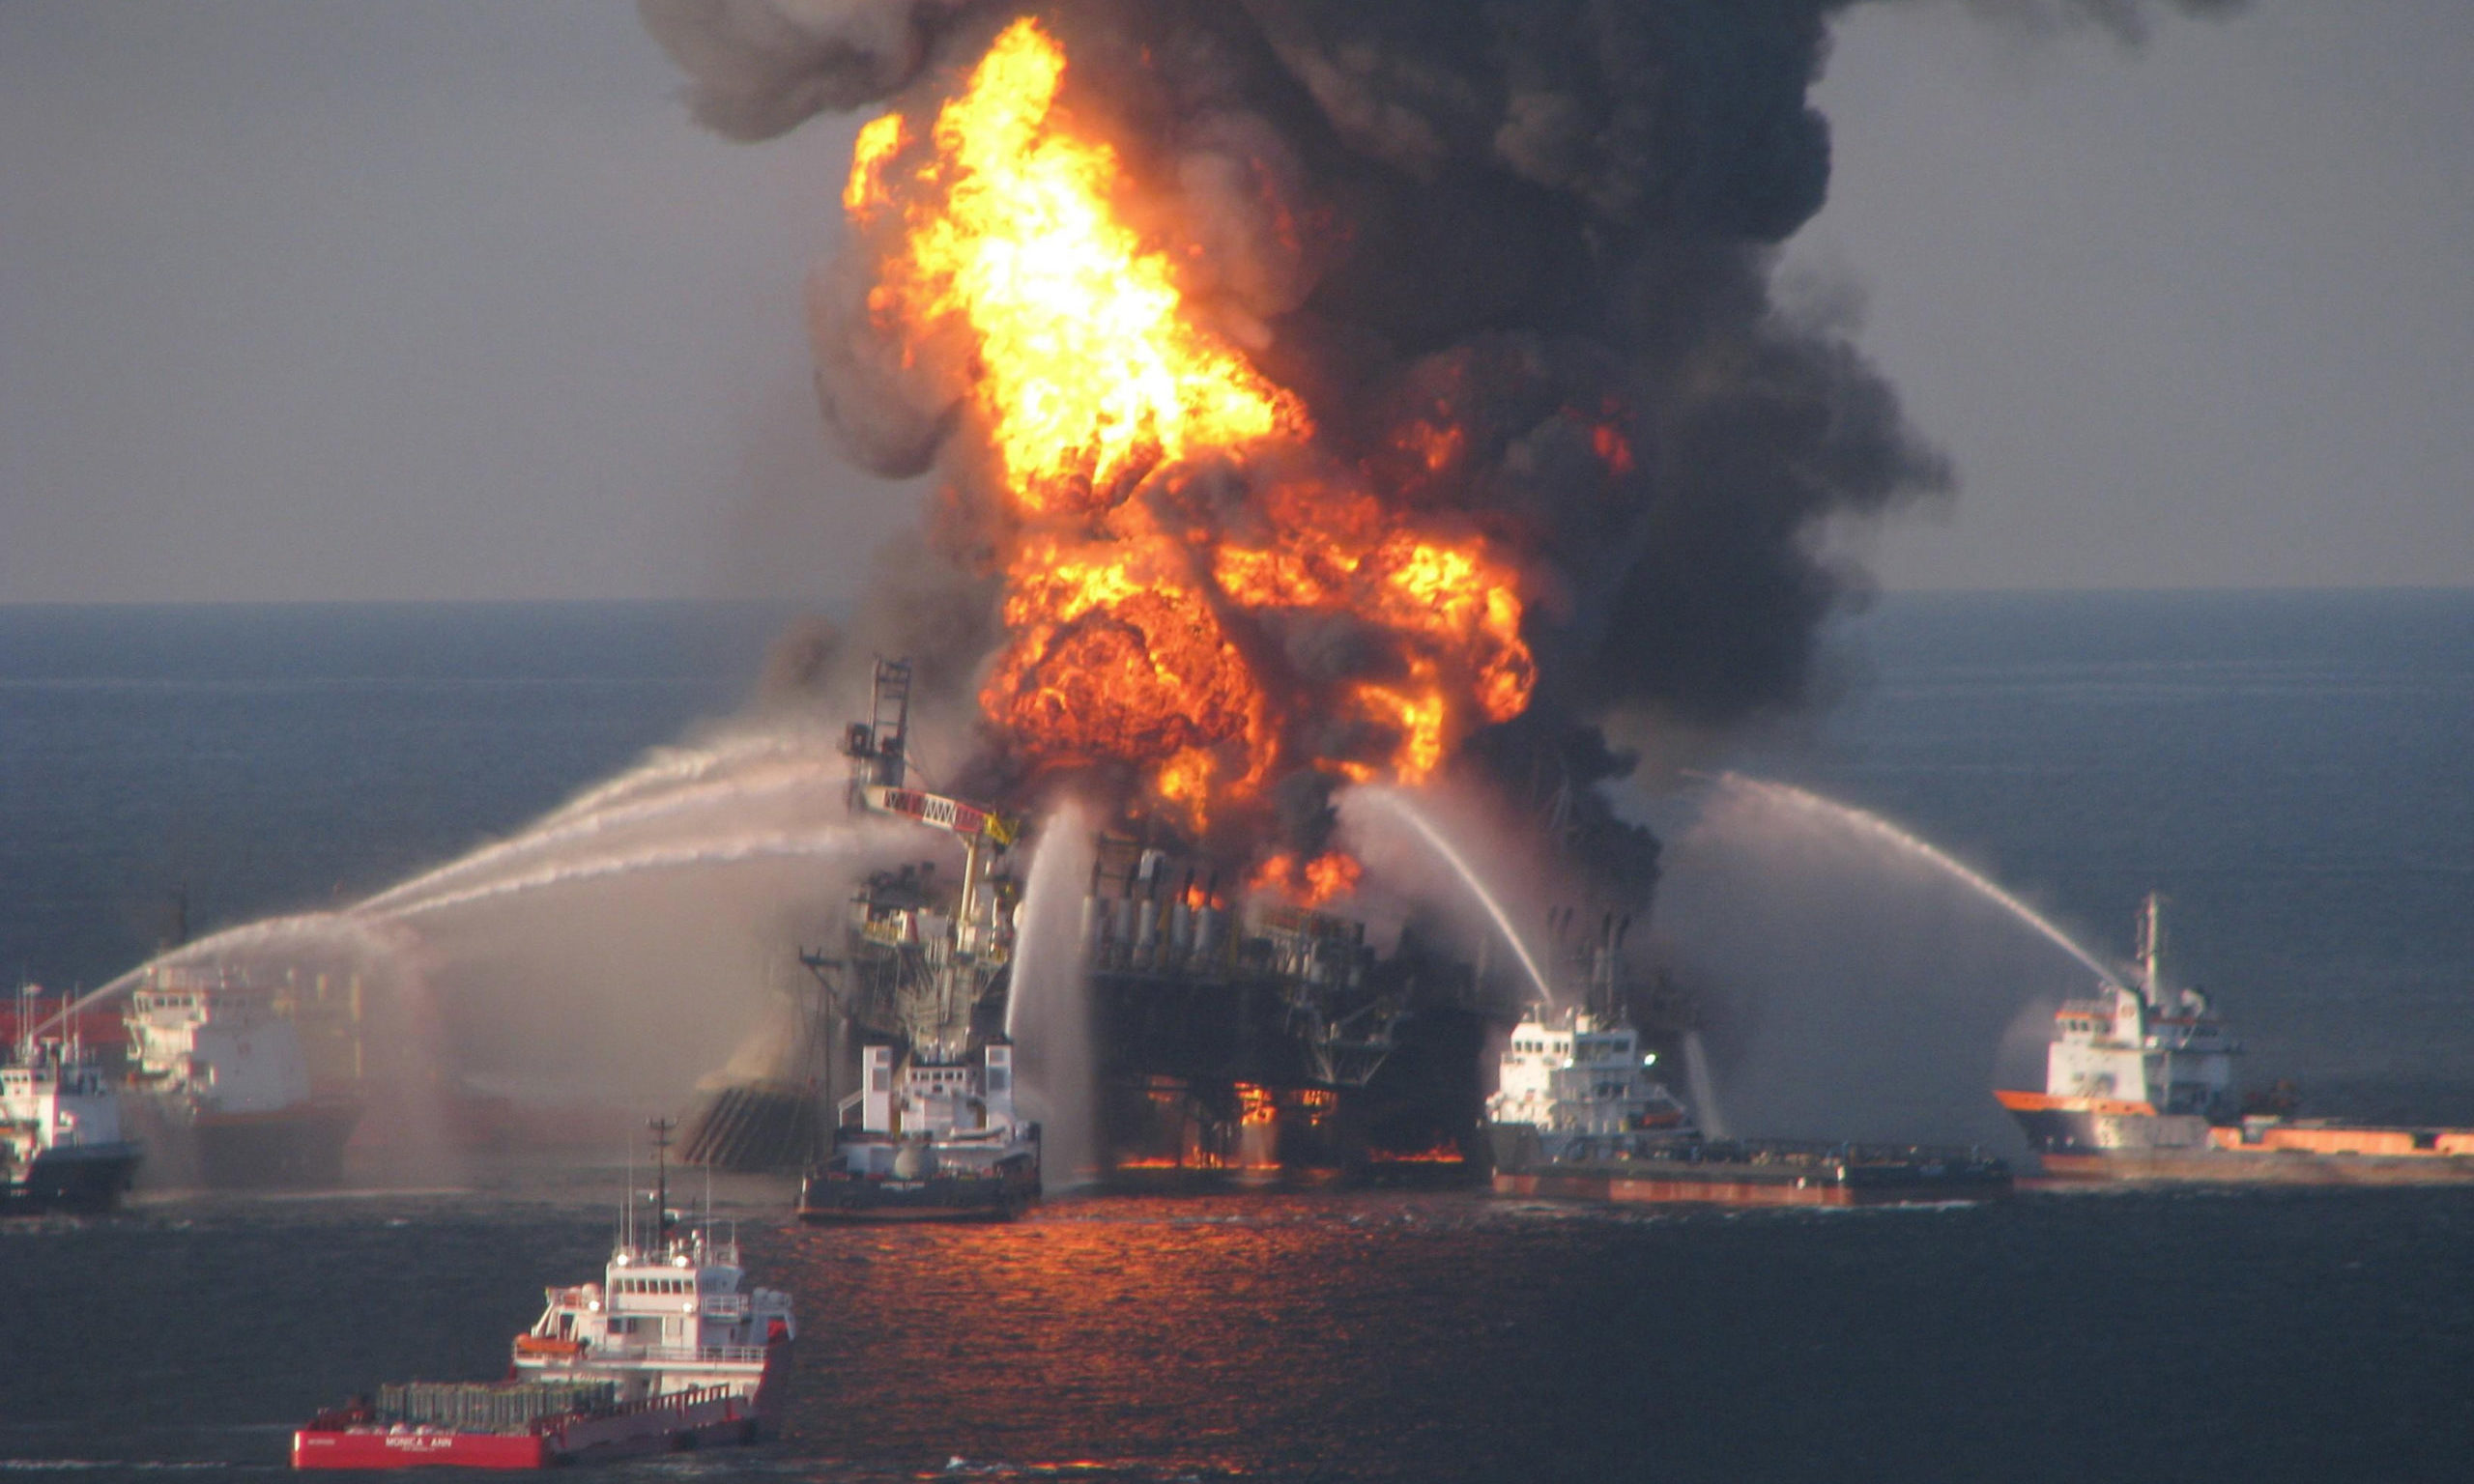 On April 20, 2010, a methane explosion on BP's Deepwater Horizon Rig caused it to catch fire and sink, spilling 4.9m barrels of oil into the Gulf of Mexico.